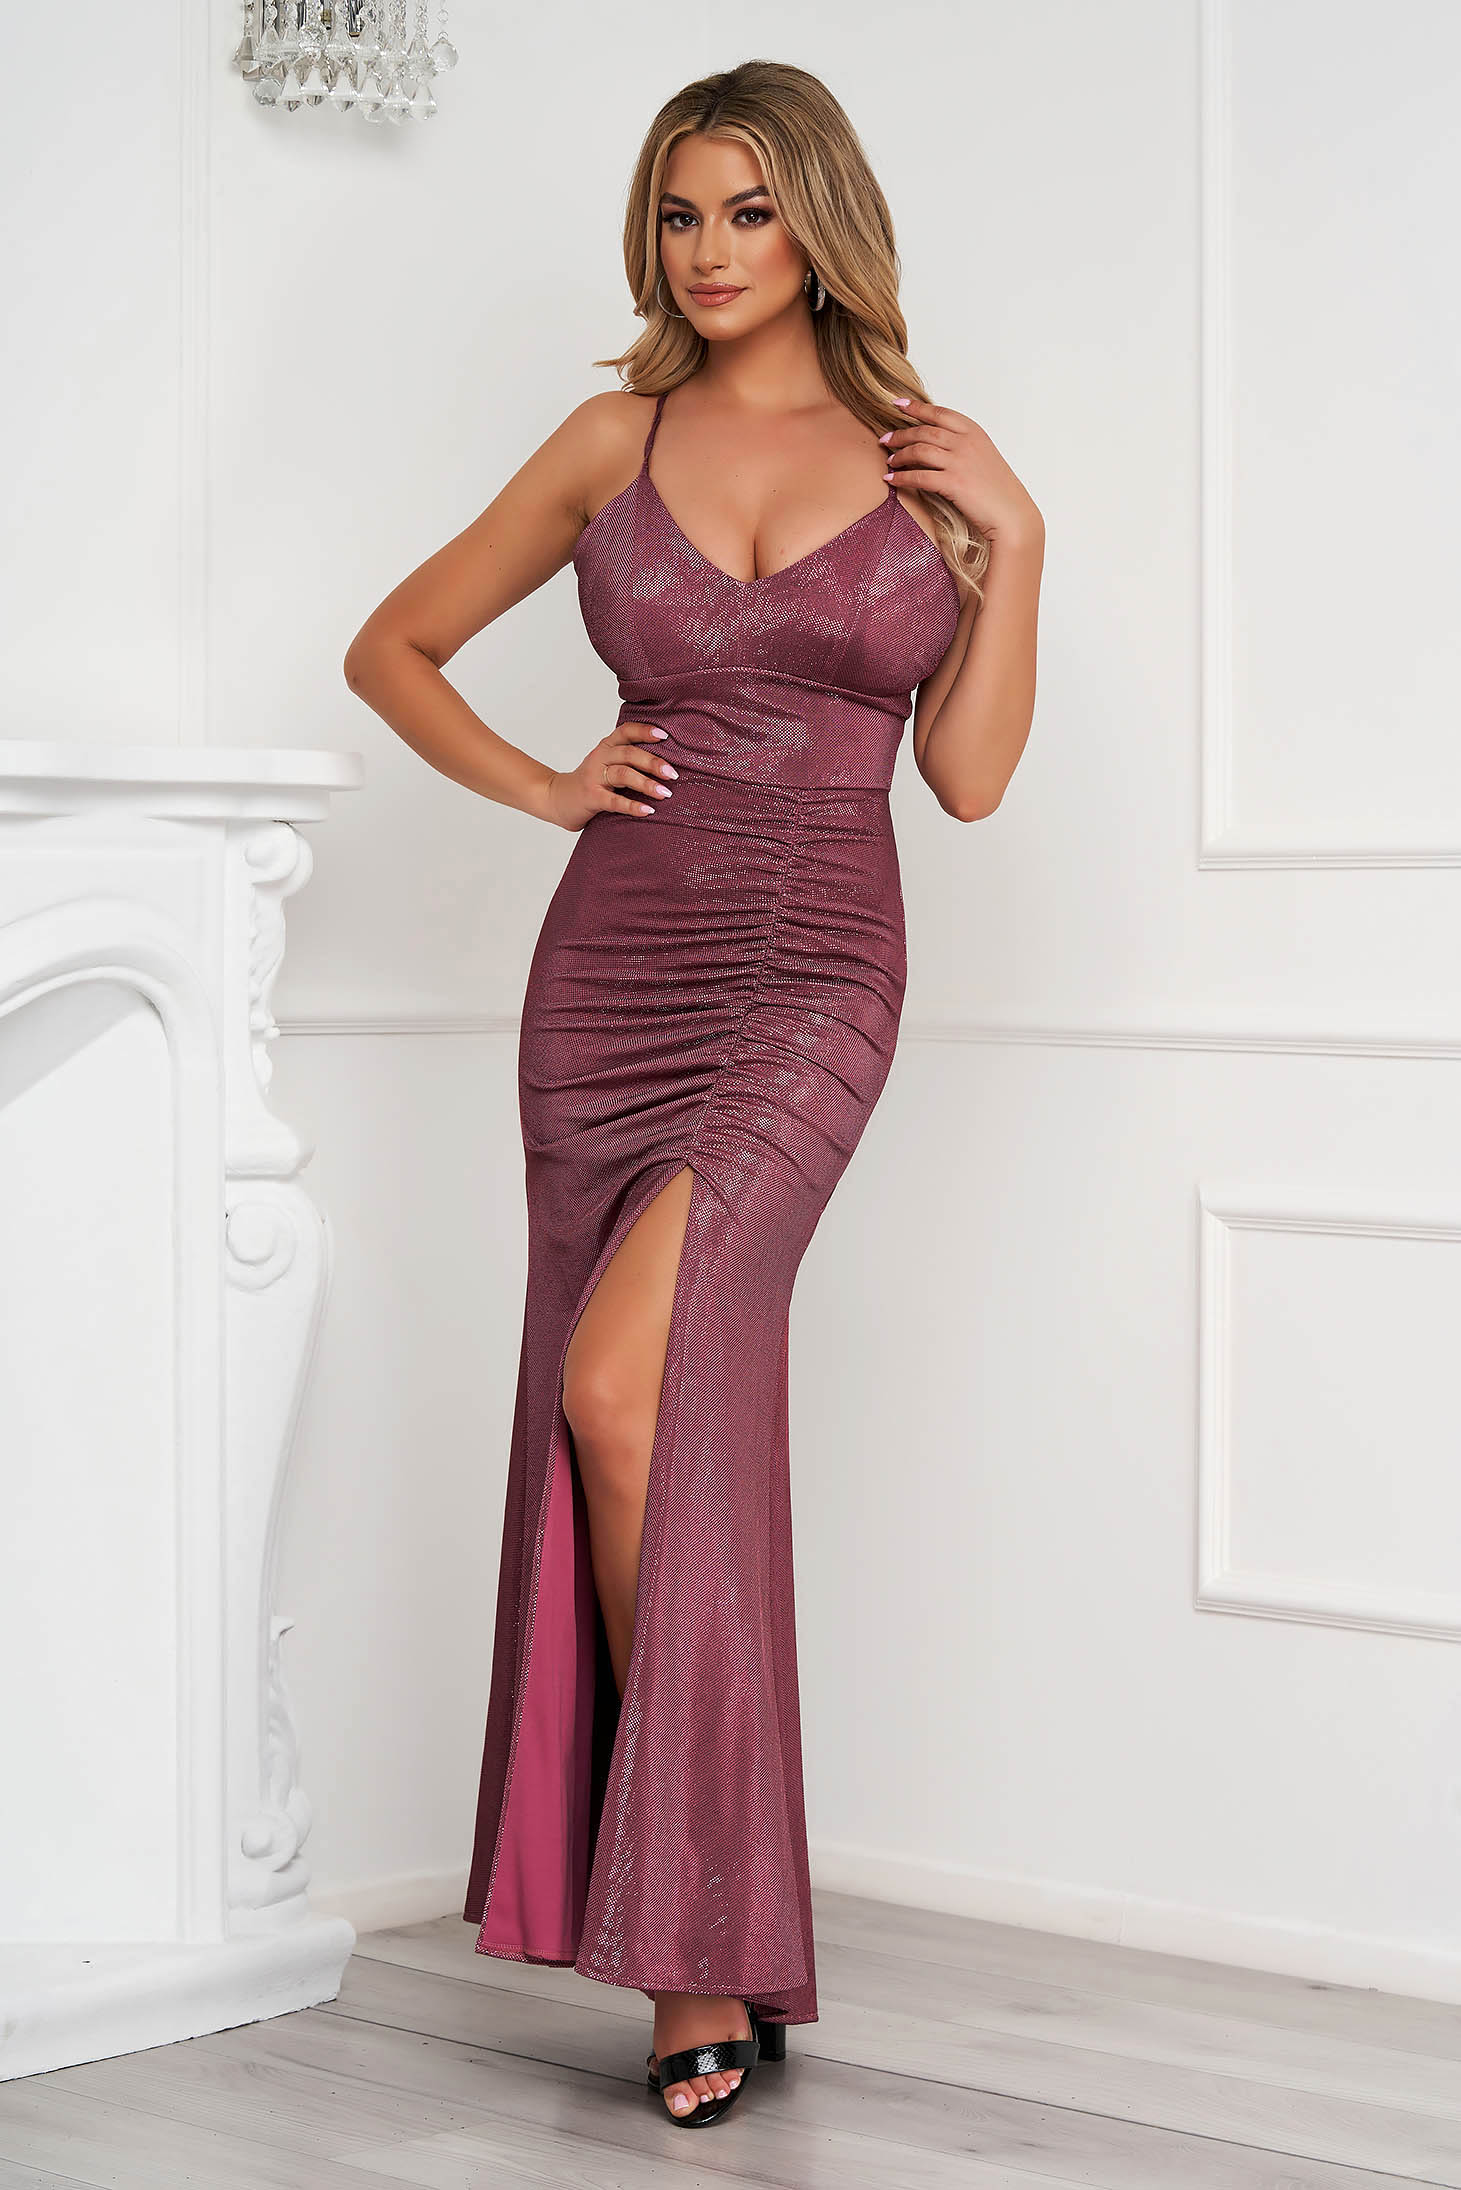 Pink dress occasional long pencil with push-up cups with straps